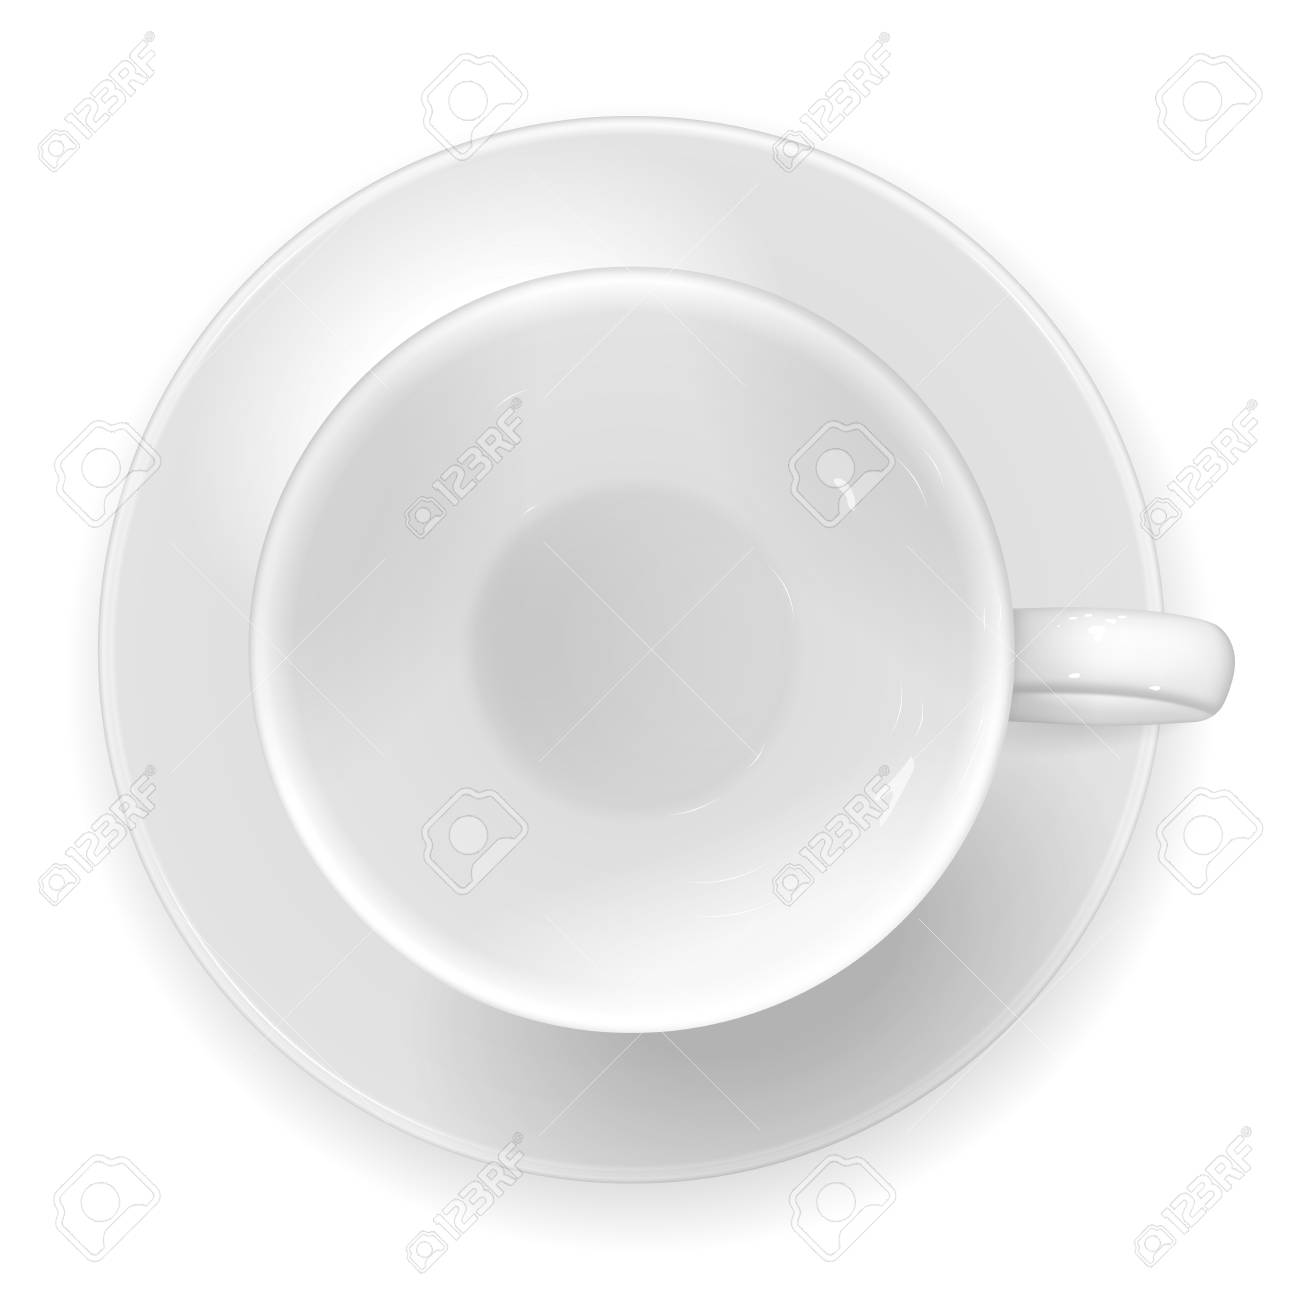 Vector Realistic Image Of A White Porcelain Cup And Saucer Top Royalty Free Cliparts Vectors And Stock Illustration Image 101673987